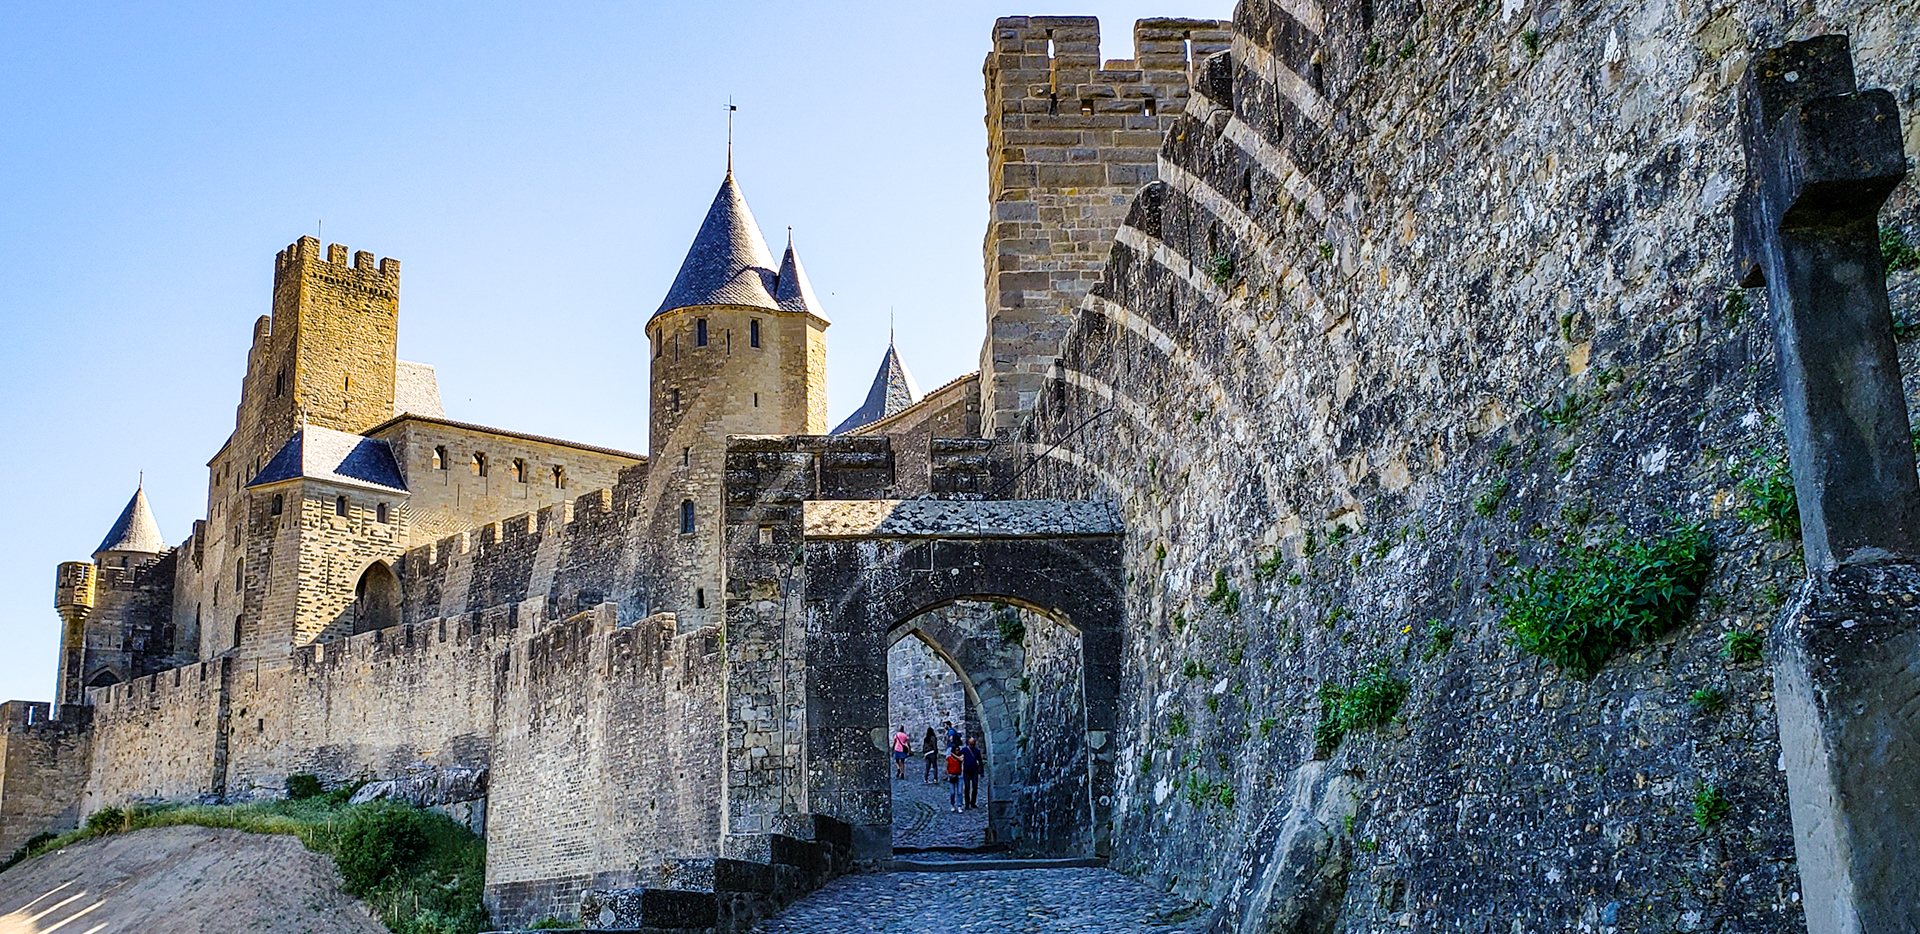 Walled and Fortified Citadel from Medieval Times